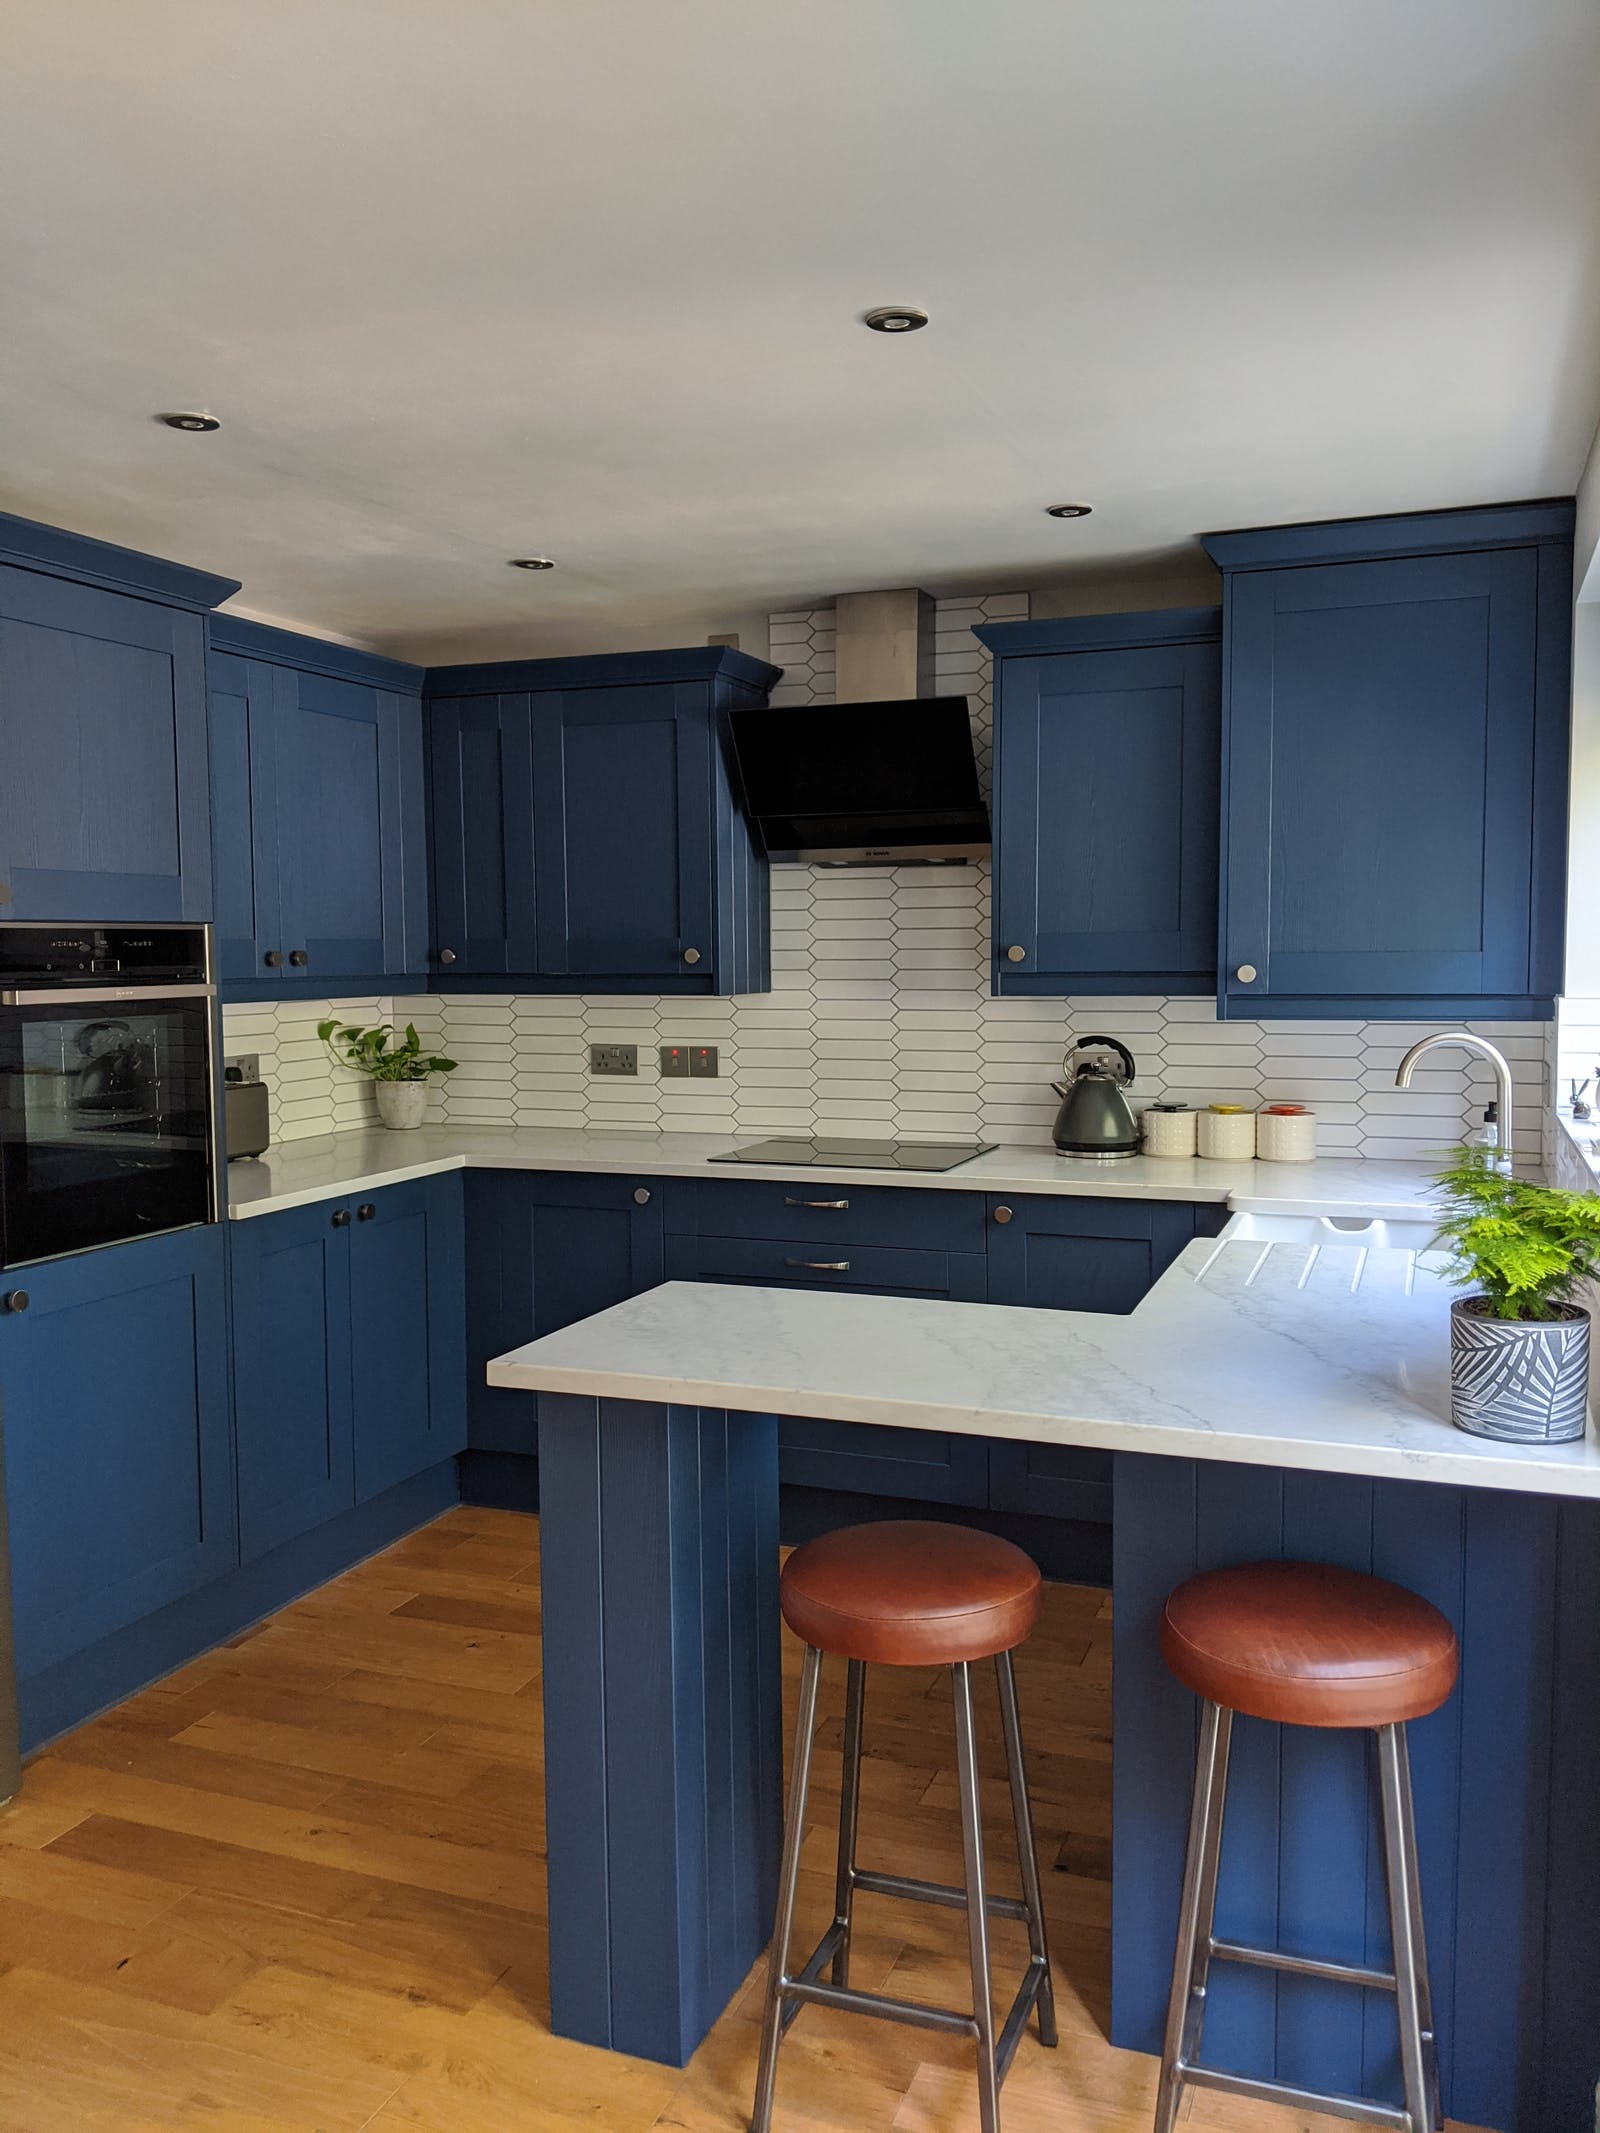 Kitchen cabinets painted in Lick Blue